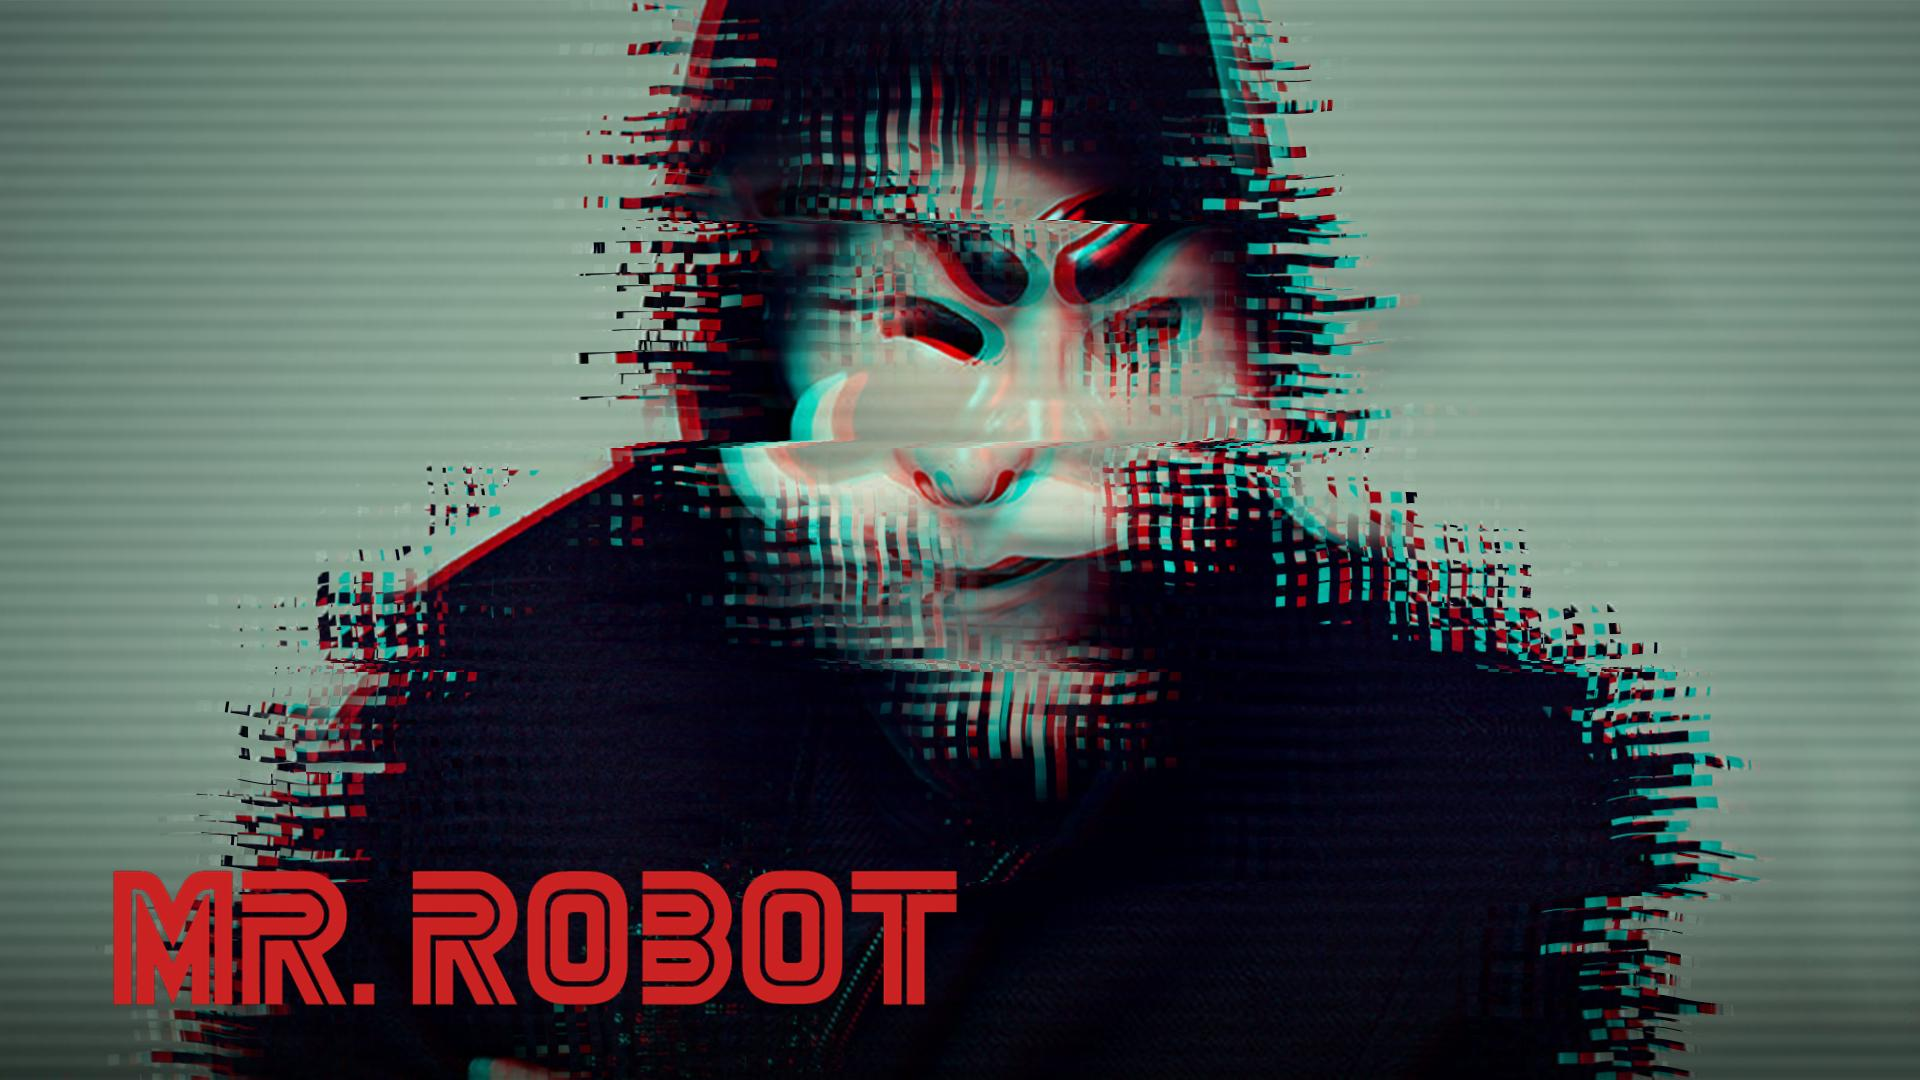 Mr. Robot Wallpapers and Backgrounds Image